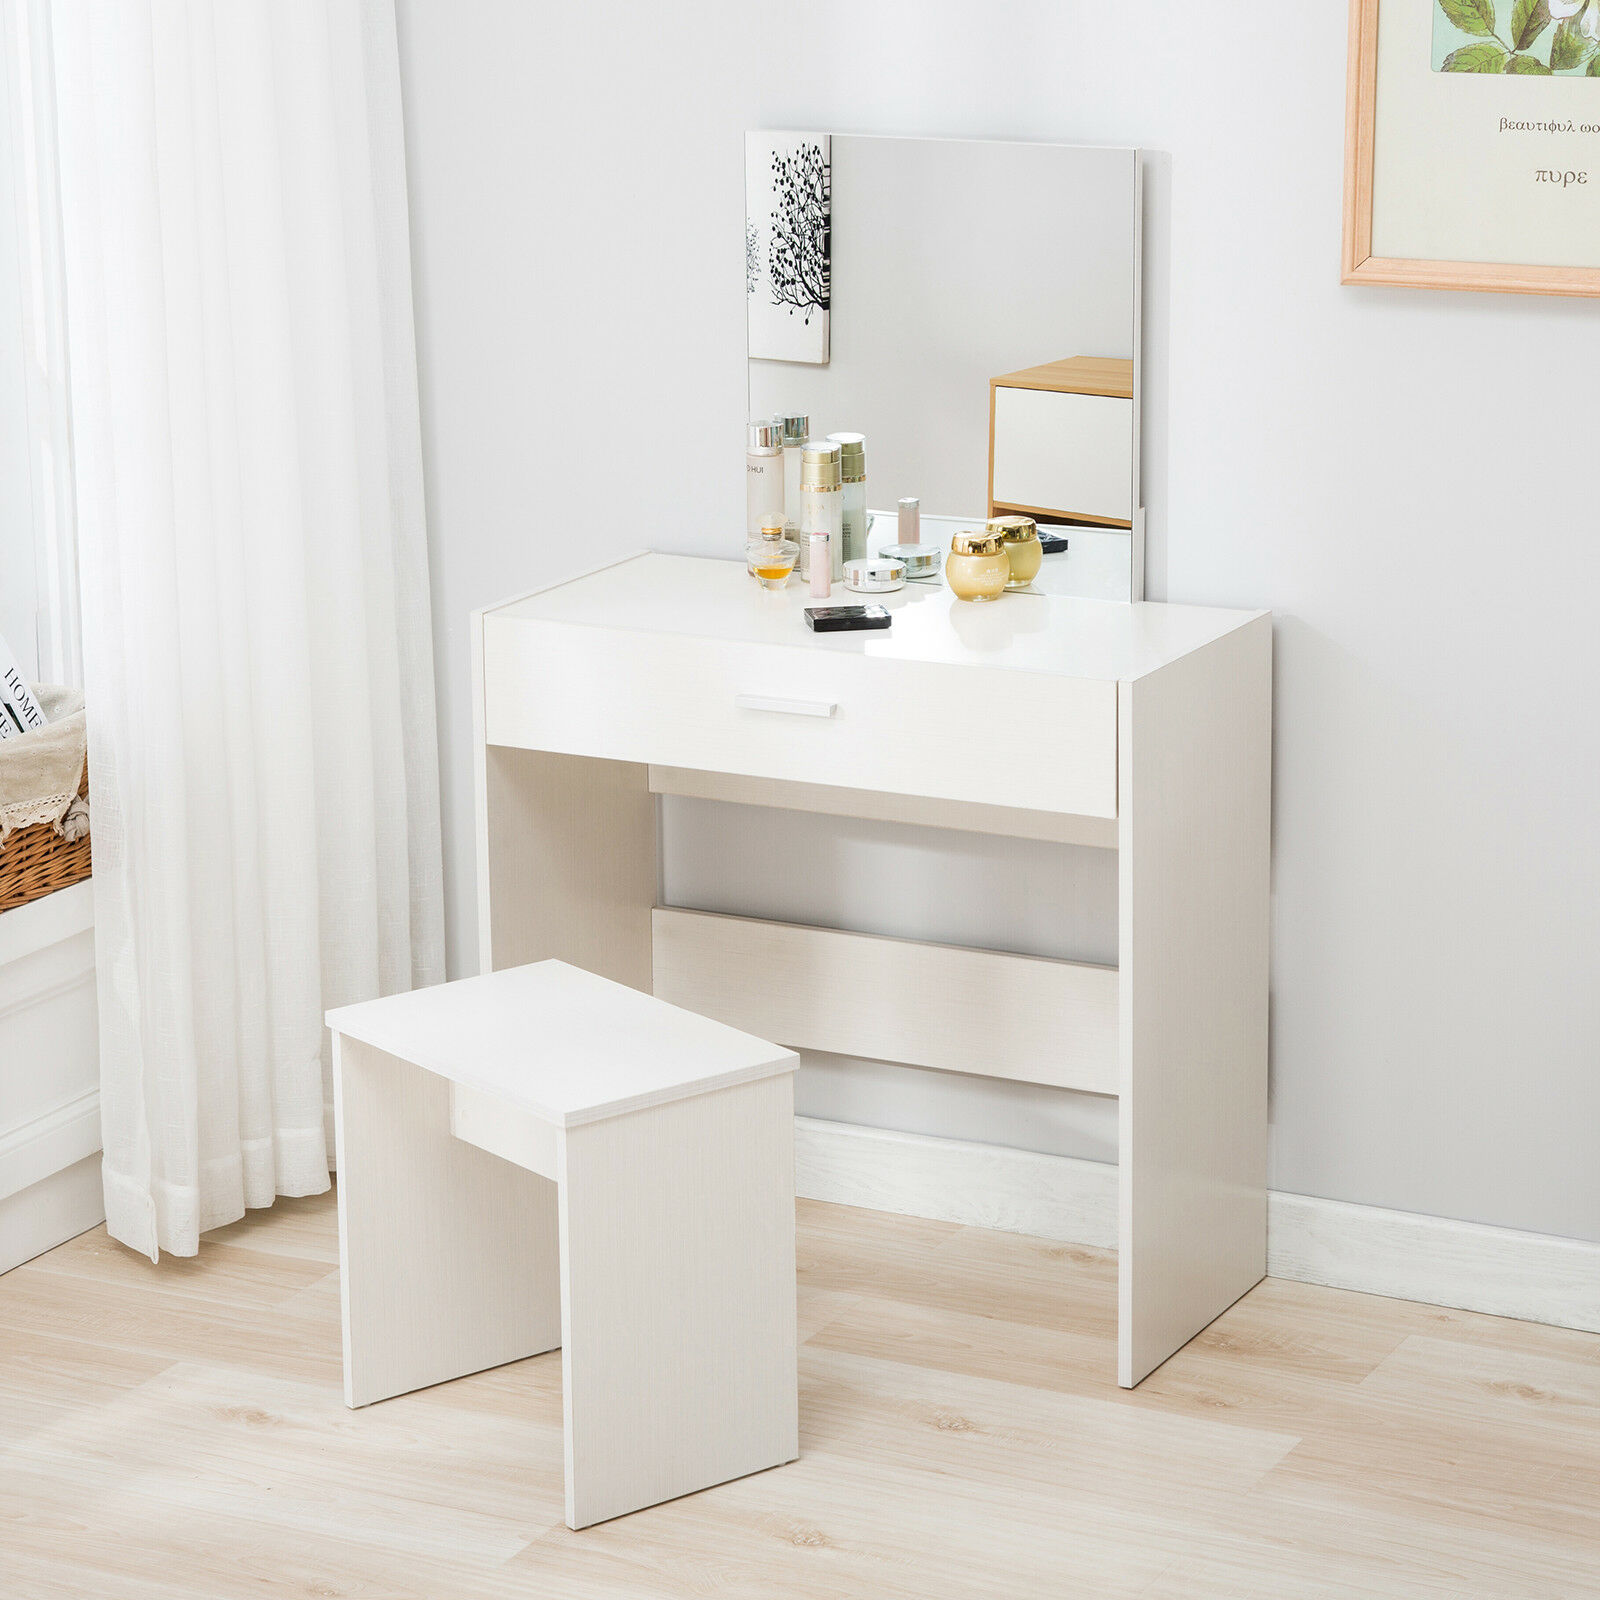 Vanity white makeup desk dressing table with rectangle mirror drawer and stool 699956900542 ebay - White vanity dressing table ...